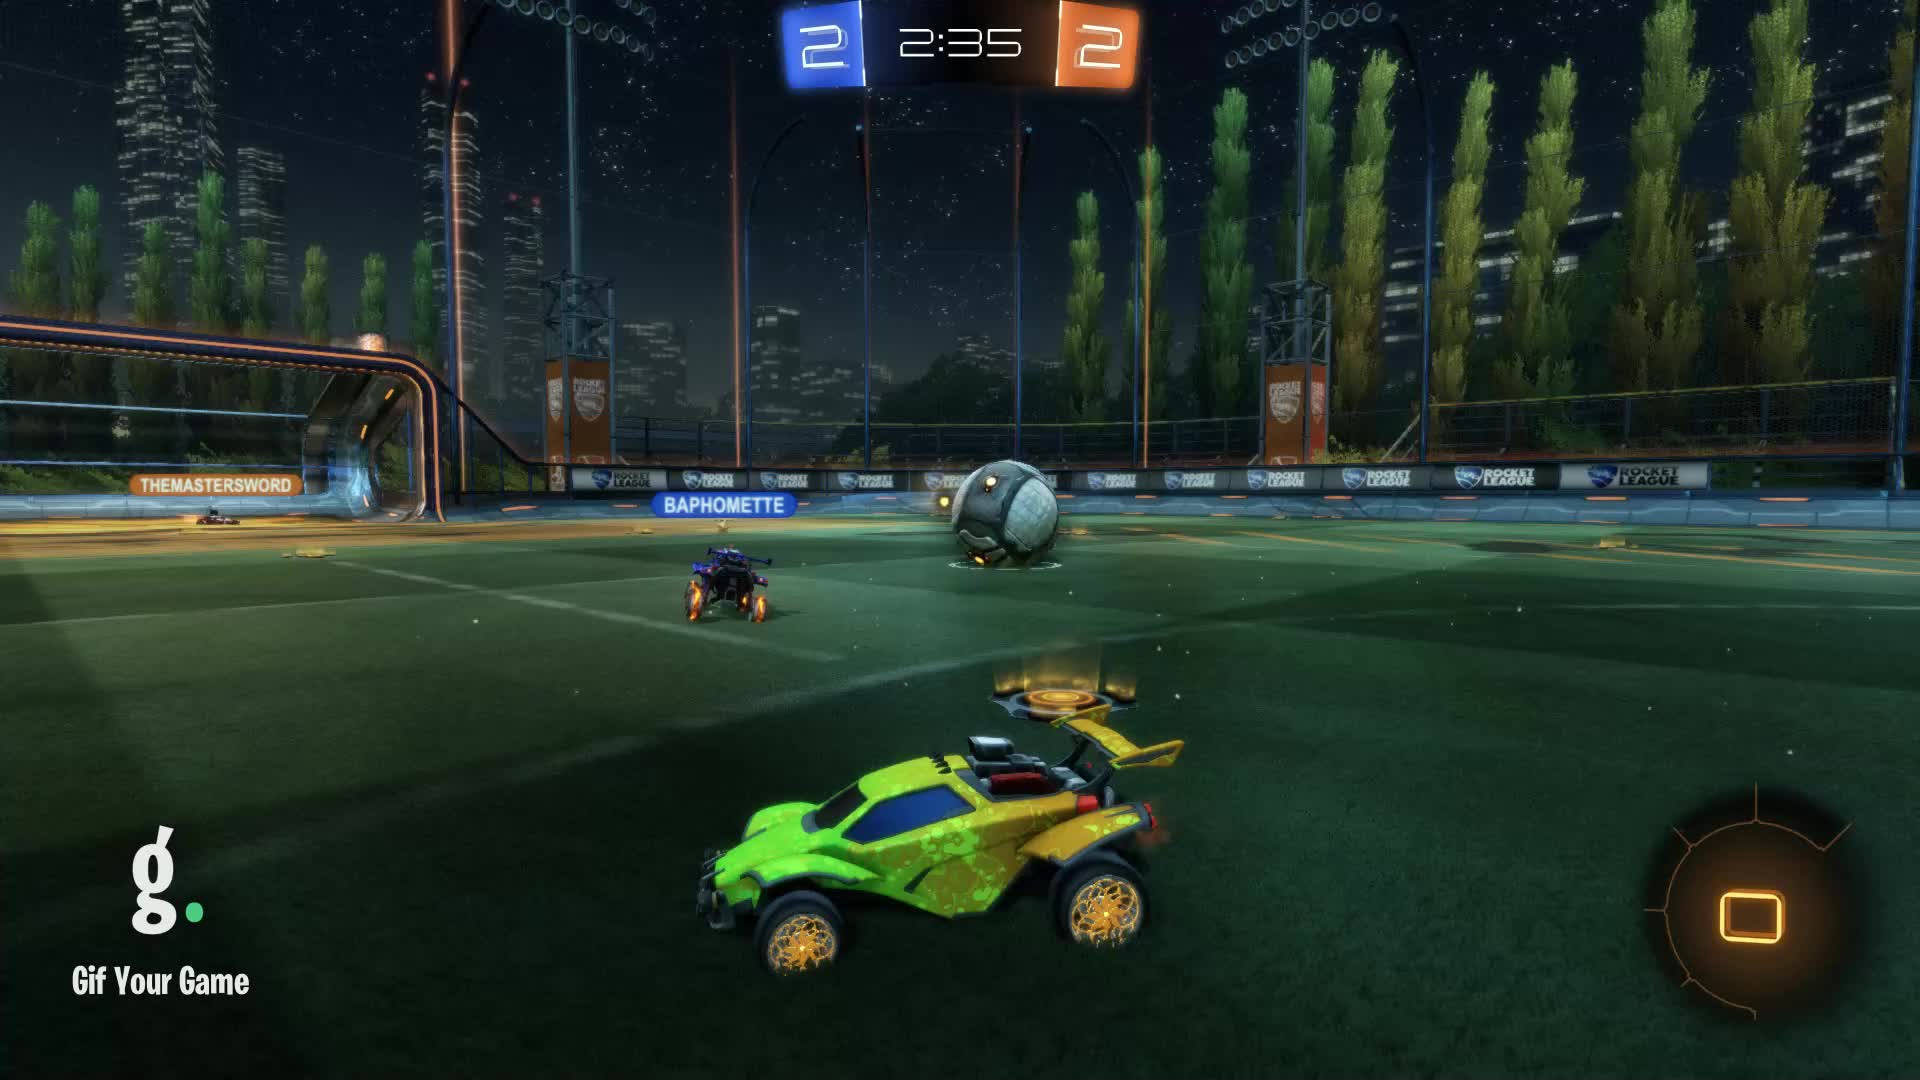 Assist, Gif Your Game, GifYourGame, Rocket League, RocketLeague, datboi, Assist 3: datboi GIFs